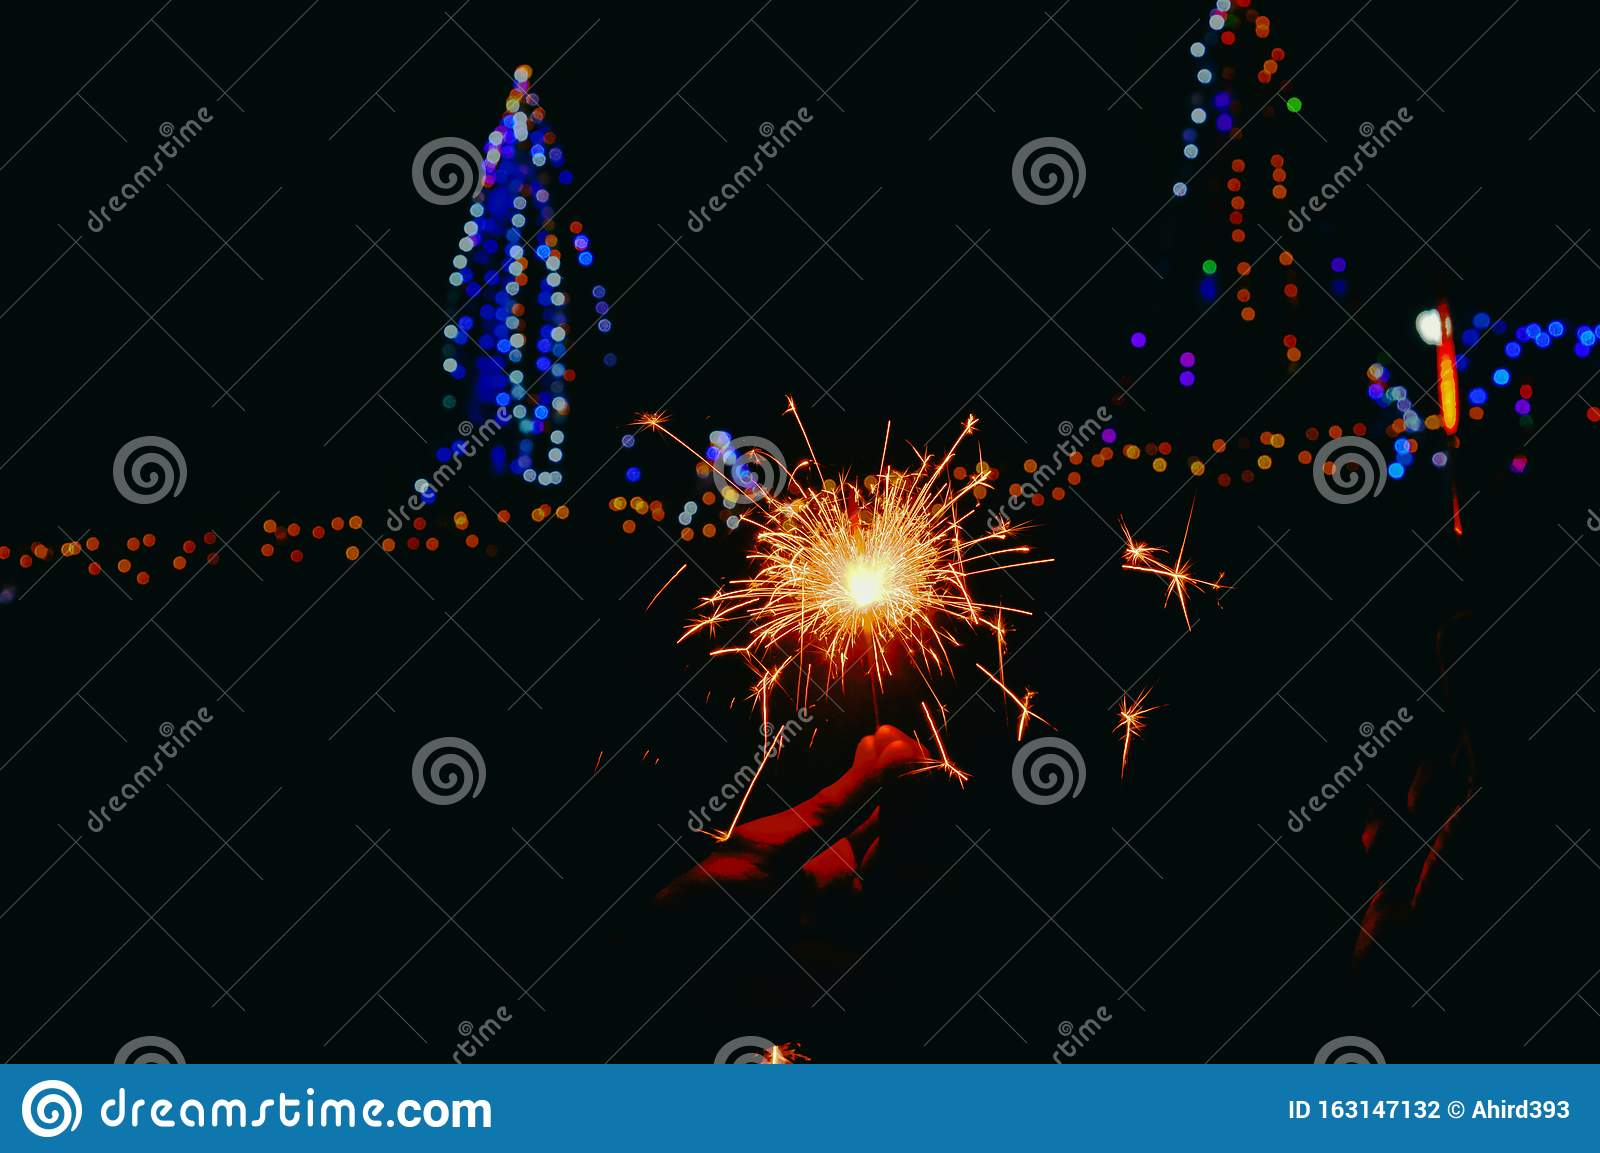 man hand firewrks Close up view,happy birthday, night party ,happy diwali,Man's hand holds sparklers, Happy New Year, Glowing